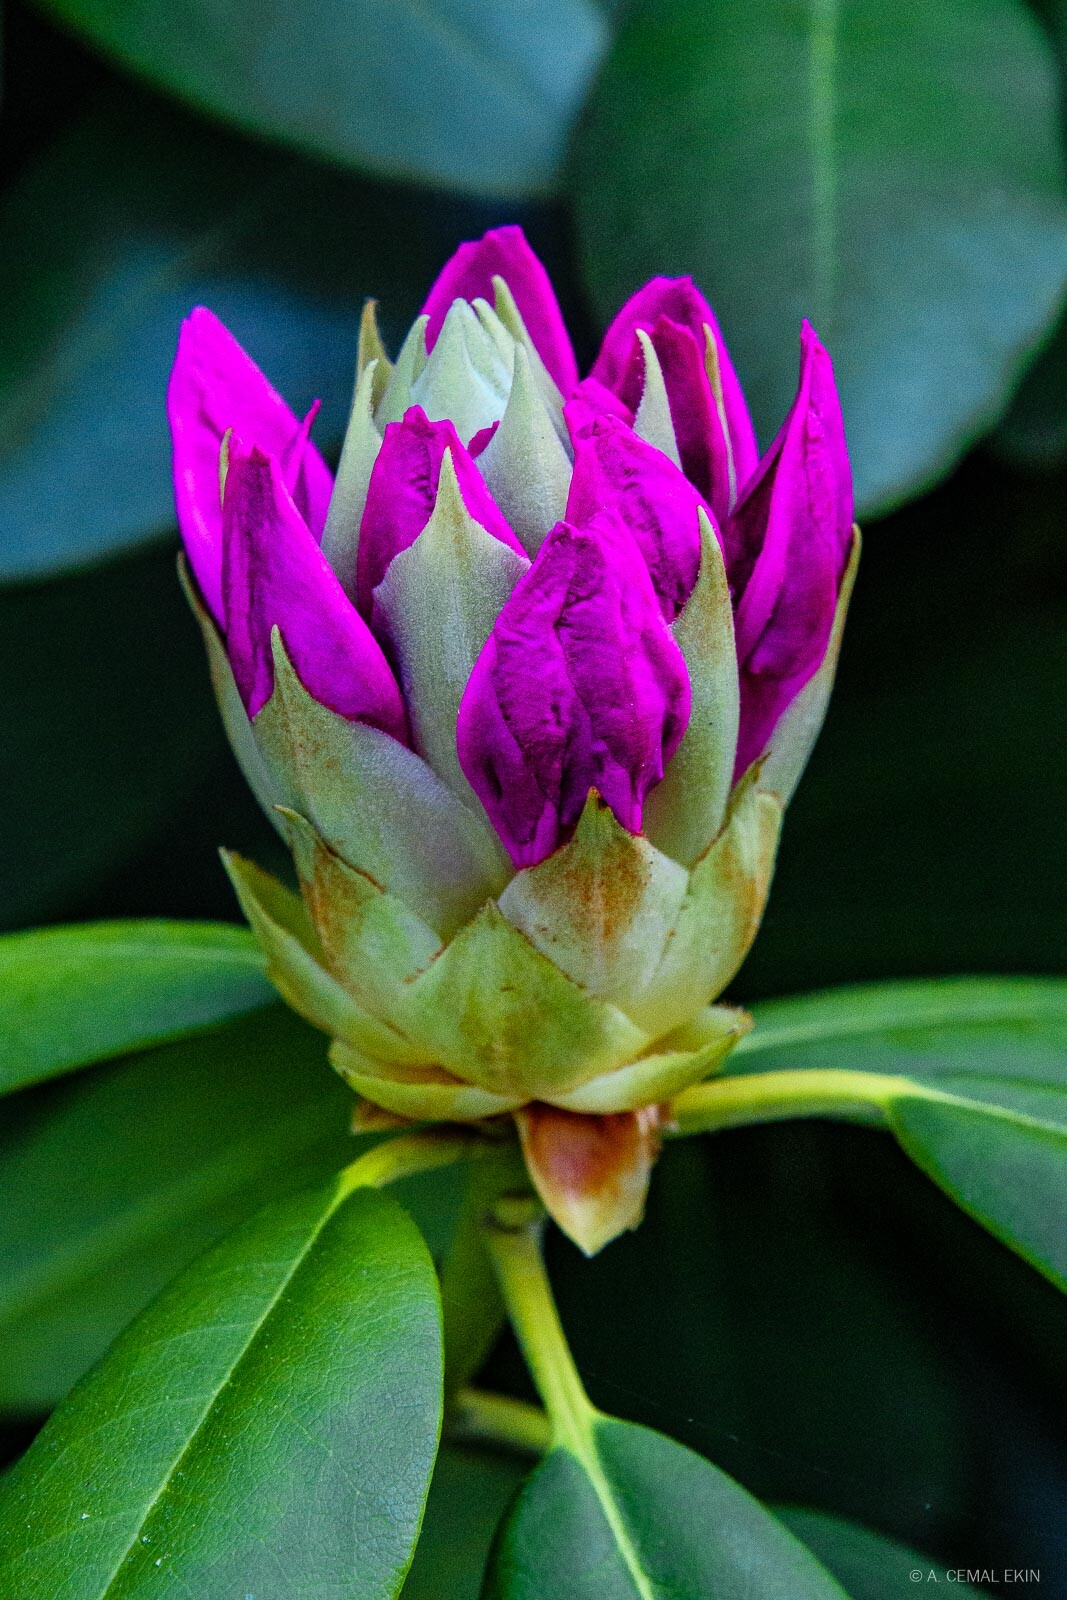 Rhododendron bud symbolizing hope and serenity